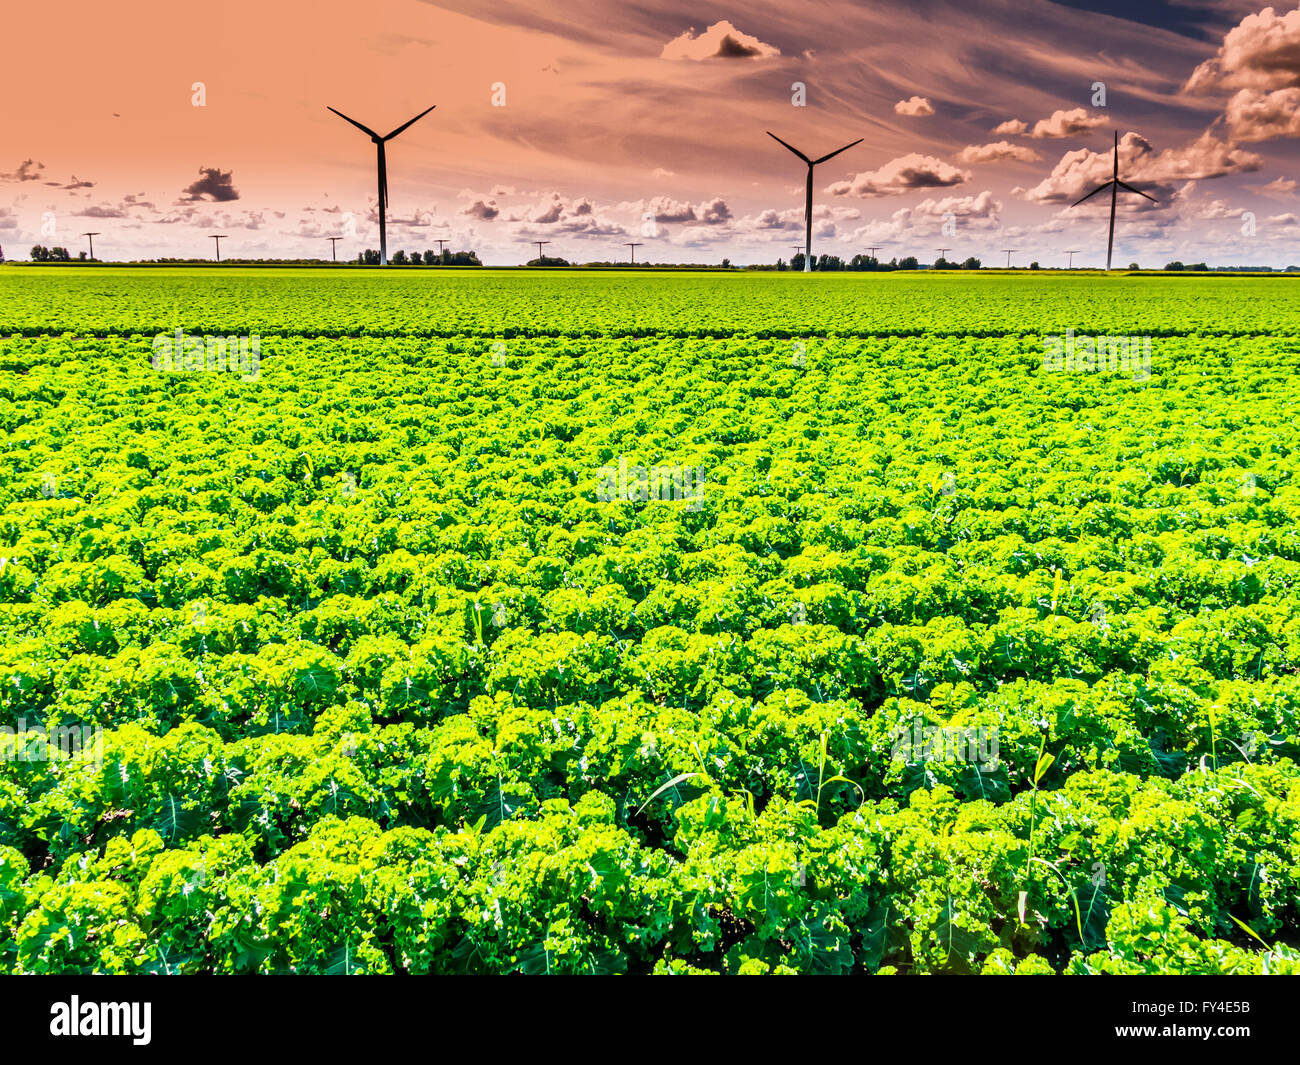 Farmland and wind turbines in Flevoland polder, the Netherlands - Stock Image